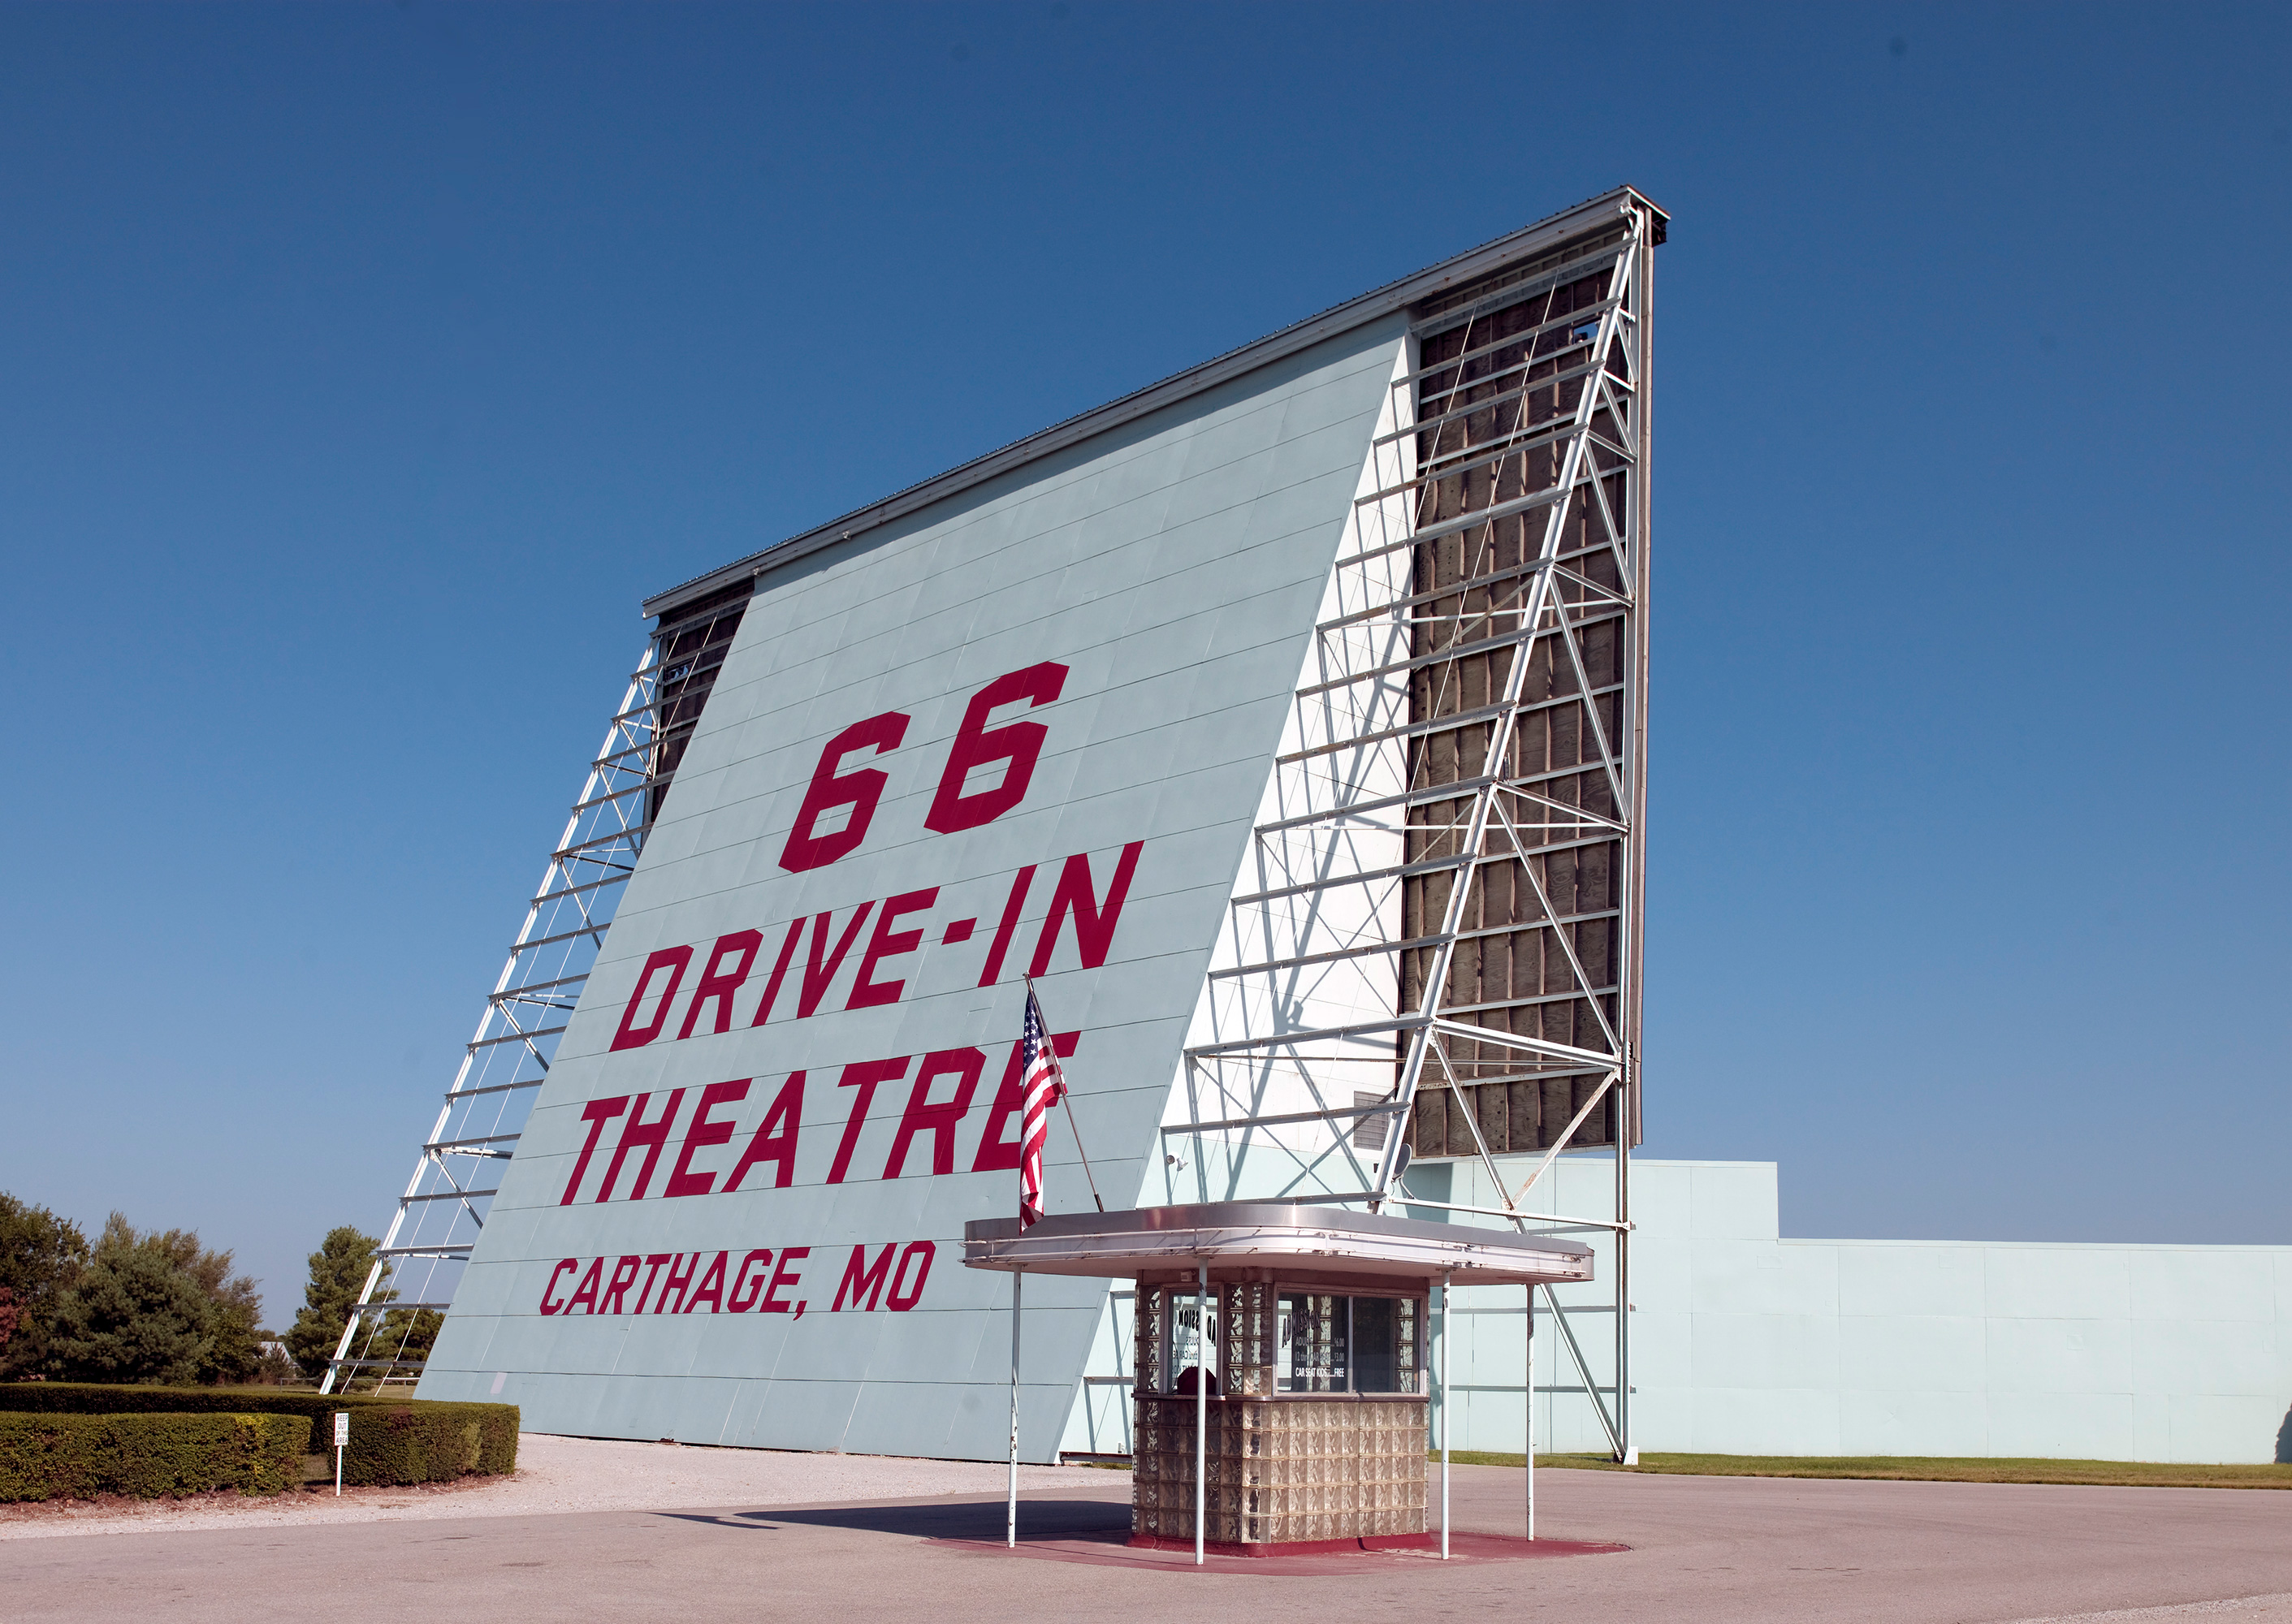 This is the only theater on this list that has earned status on the National Register of Historic Places. The 66 Drive-In, as it's name suggests, is just off historic Route 66—it originally opened after World War II ended in 1949, and it had room for 400 cars that were traveling along the route out west. It originally closed in 1985, but it was reopened in 1997 and has been showing double features ever since.